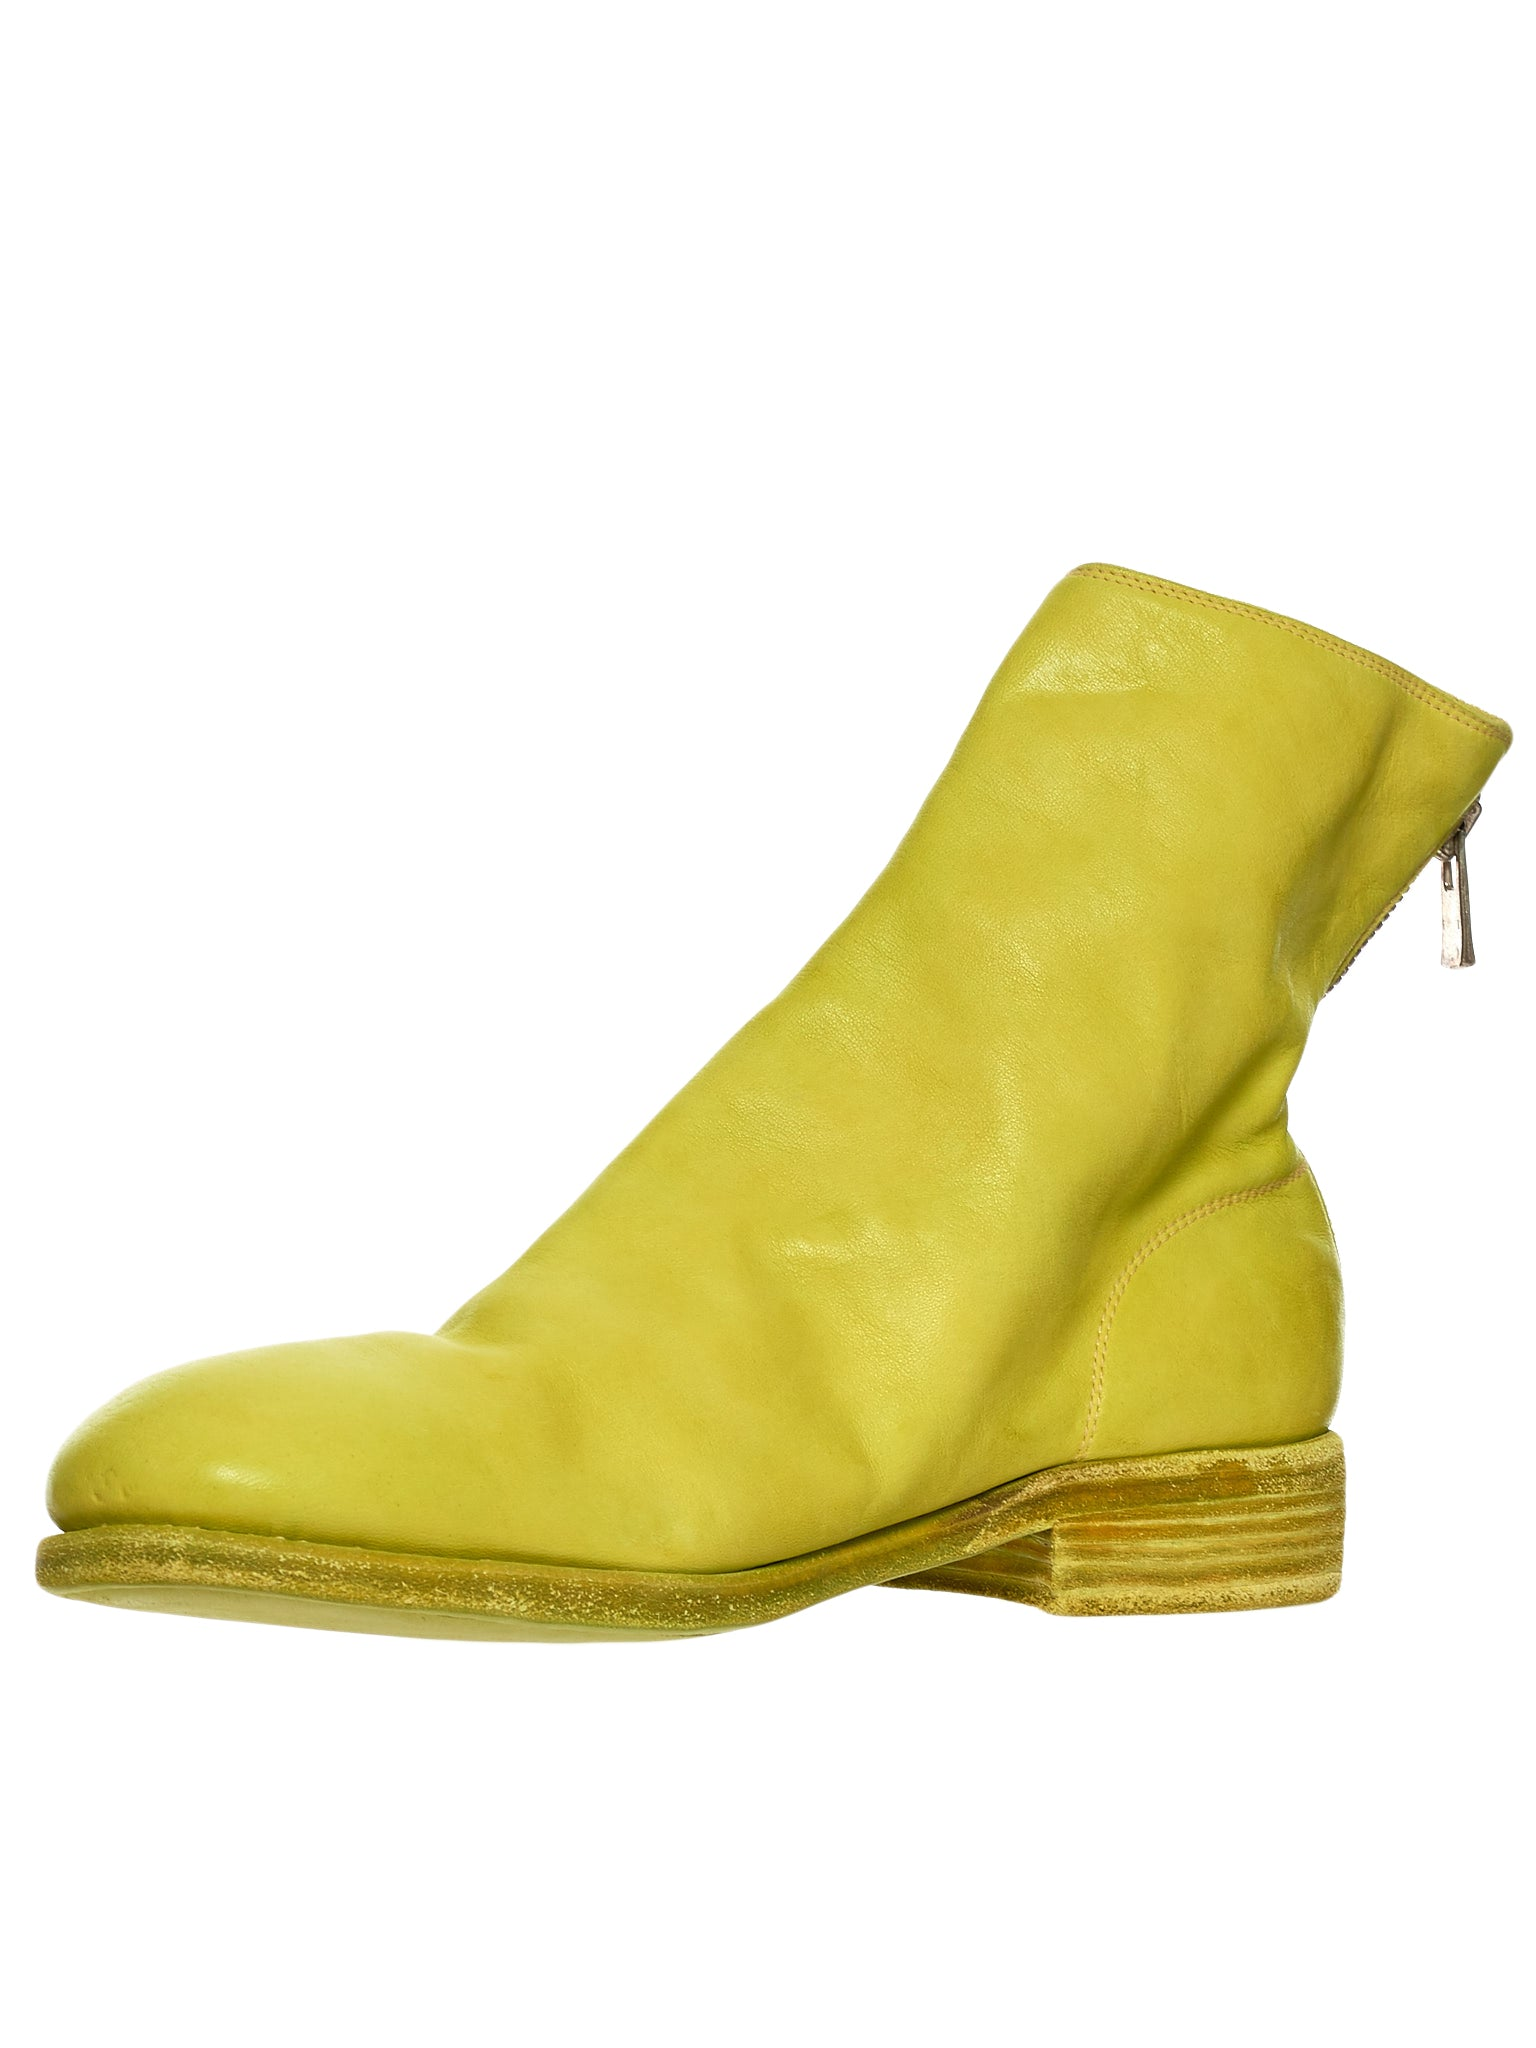 Guidi 986 Yellow Boot - Hlorenzo Detail 1